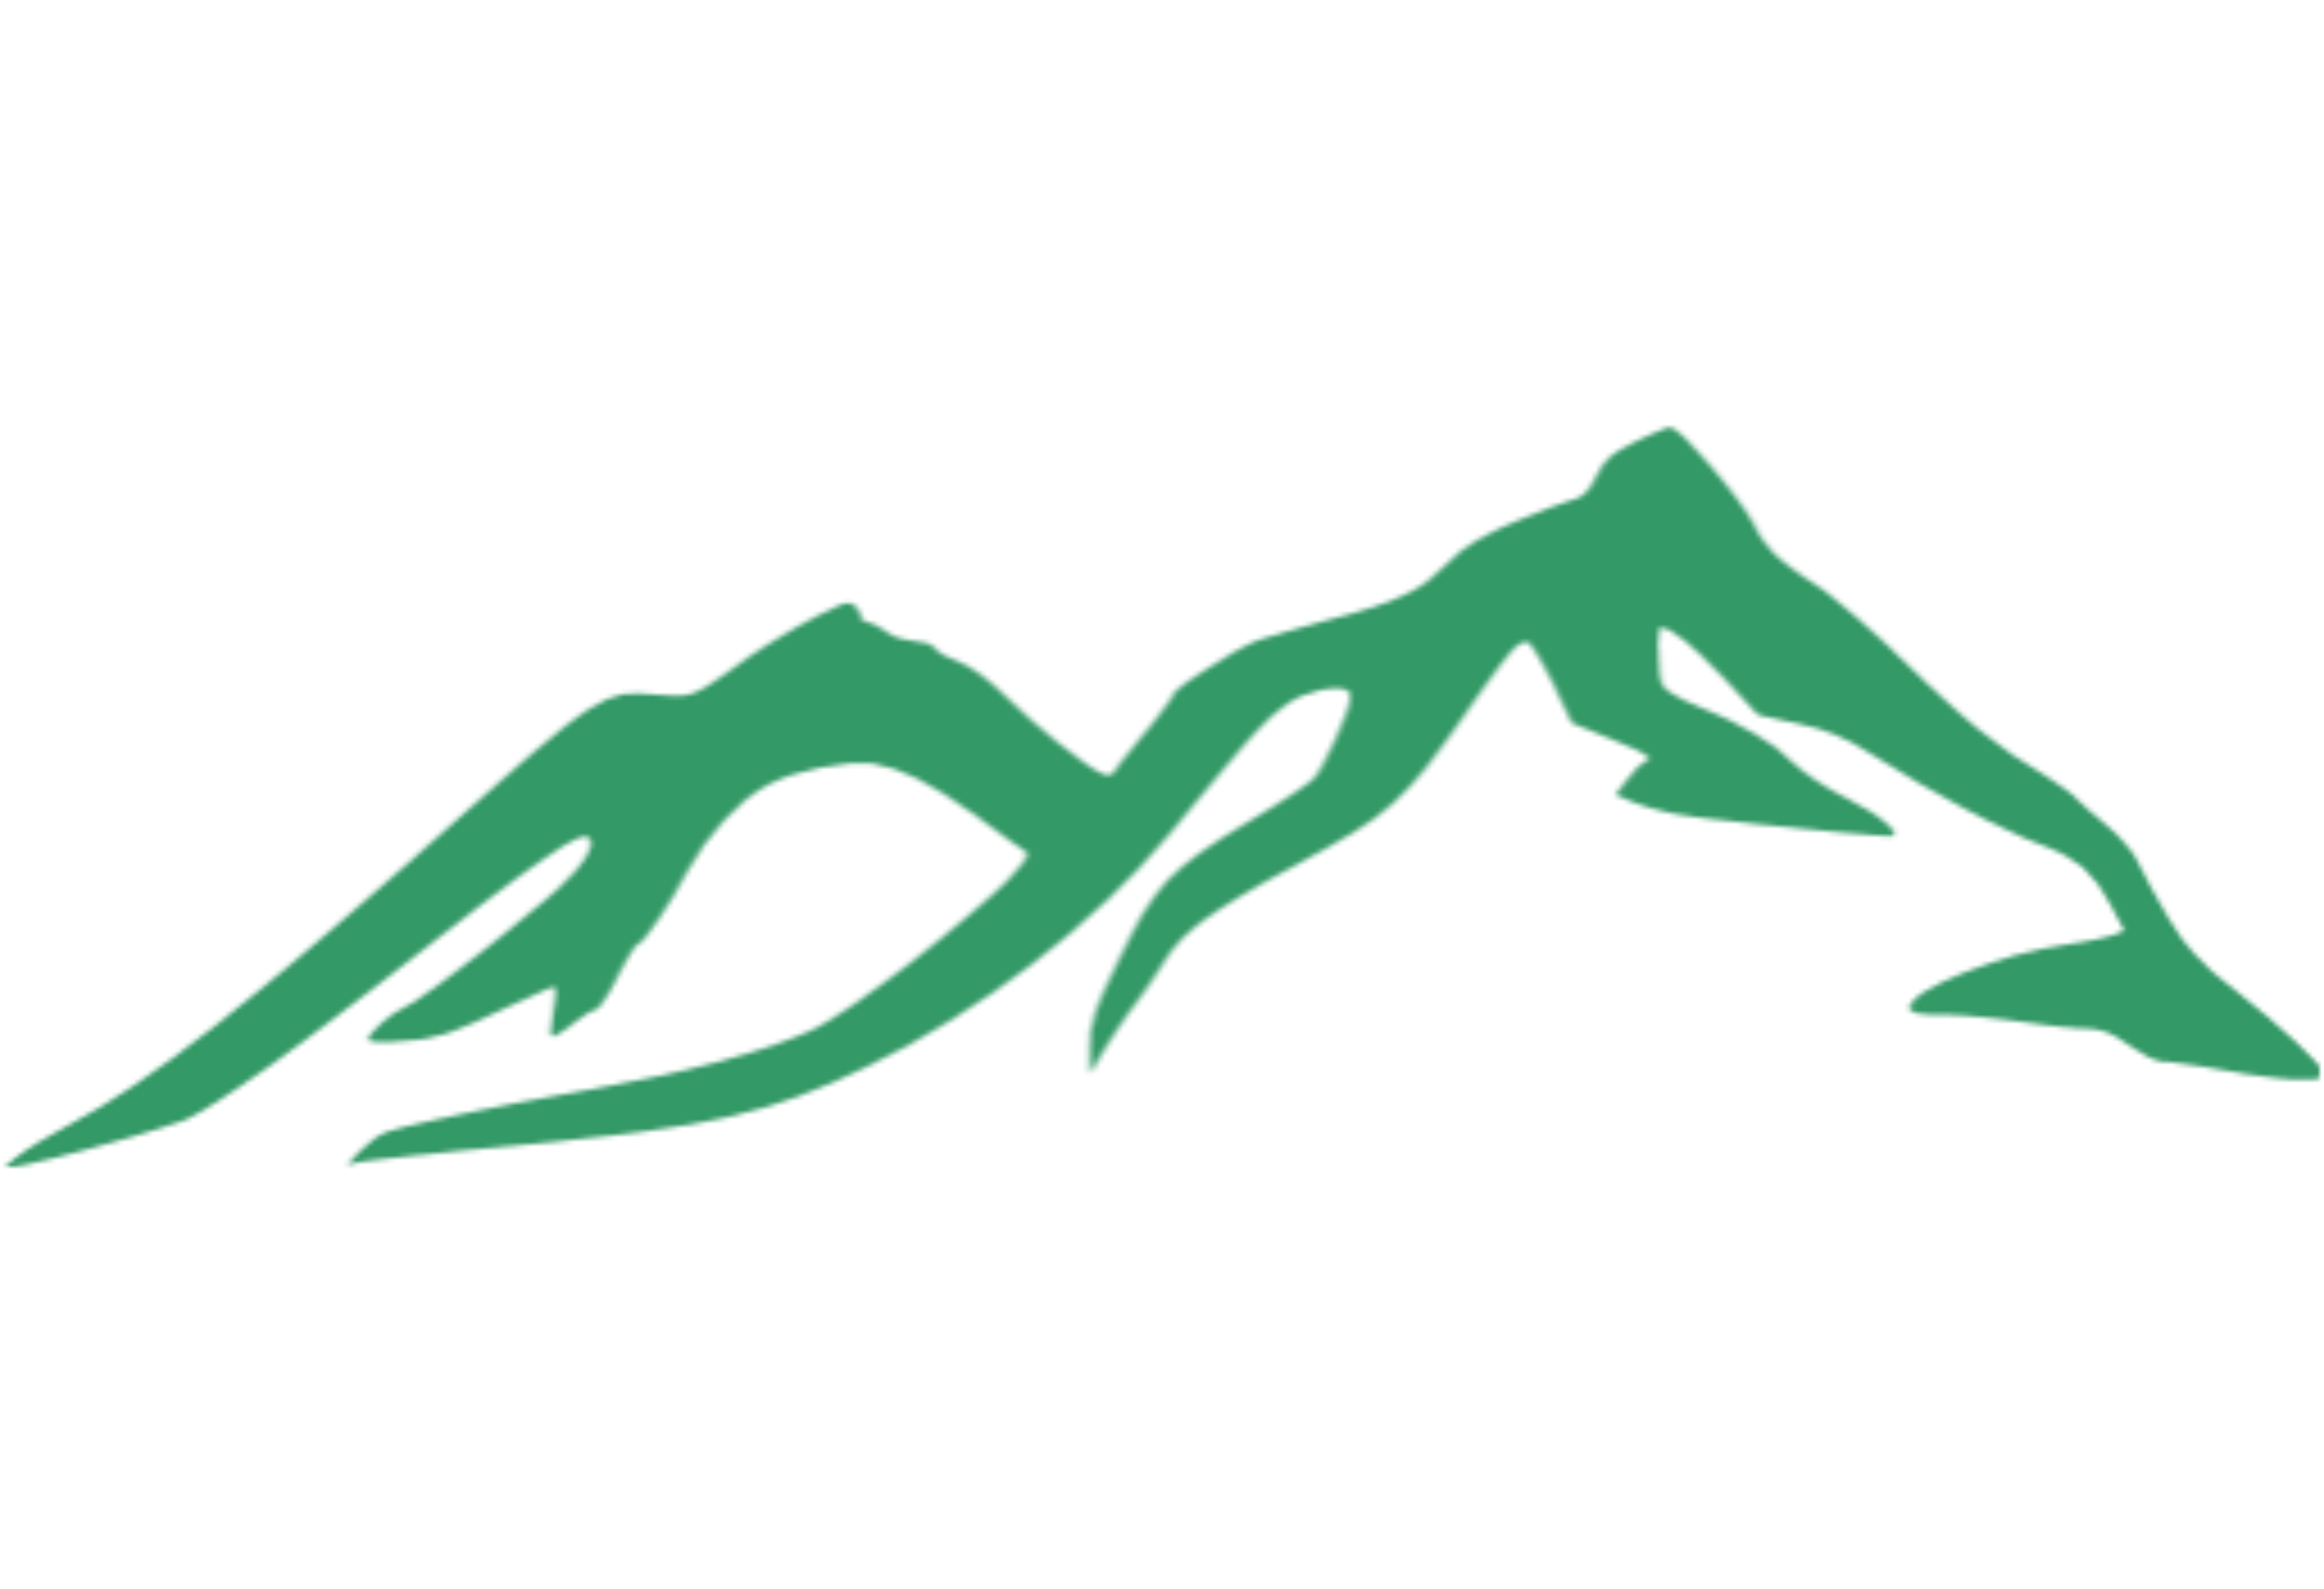 Image of cartoon mountain landscape cartoon mountain green and. File Green Mountains Icon Png Wikimedia Commons